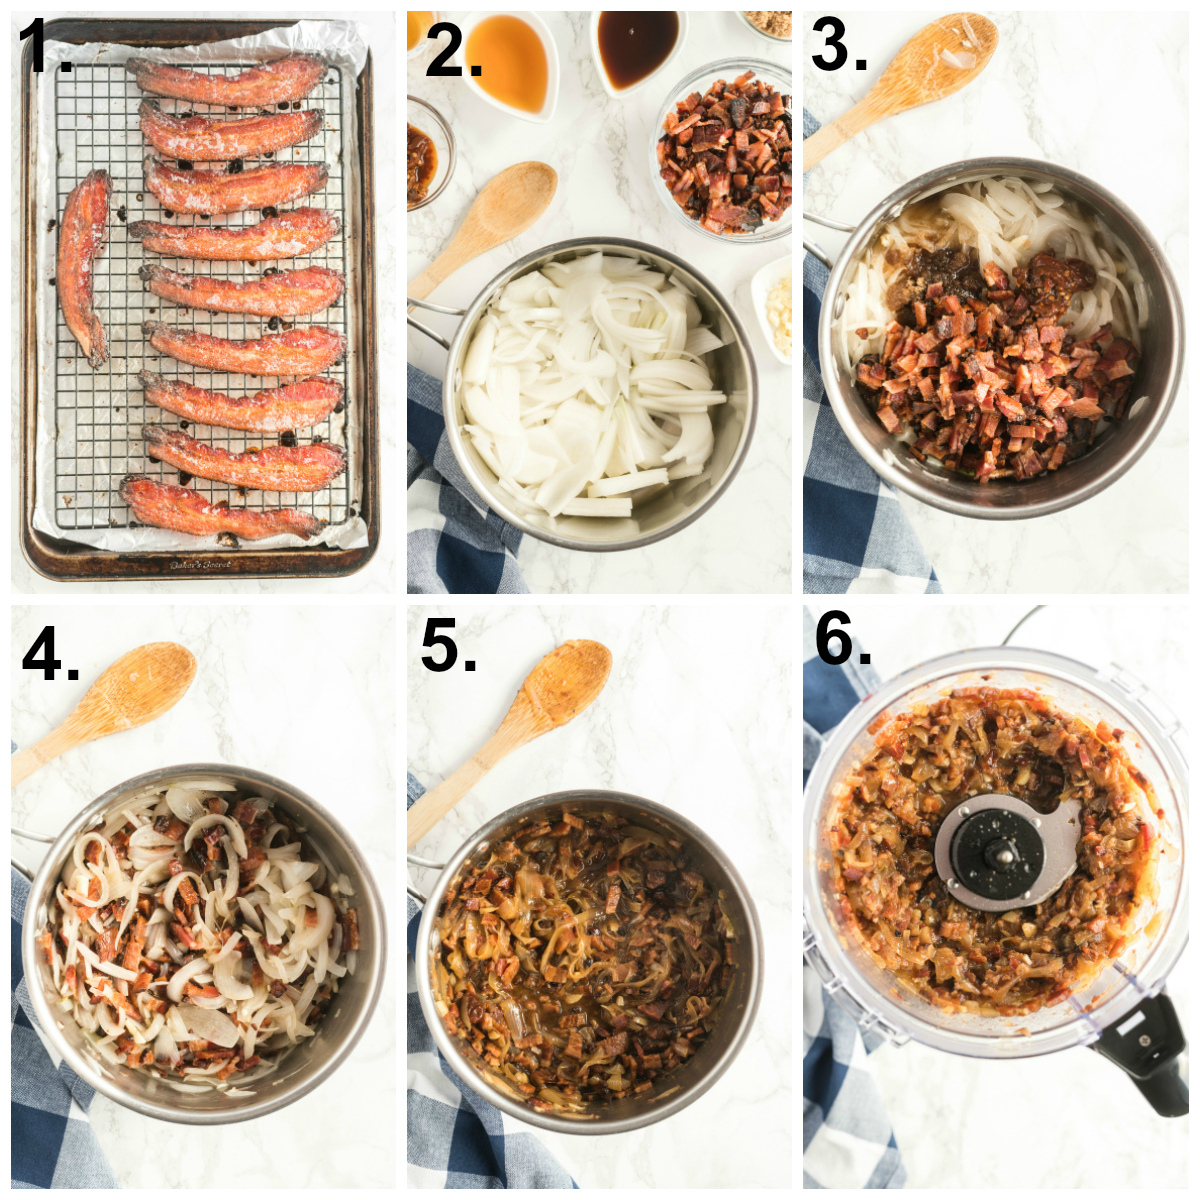 Step by step photos on how to make bacon jame